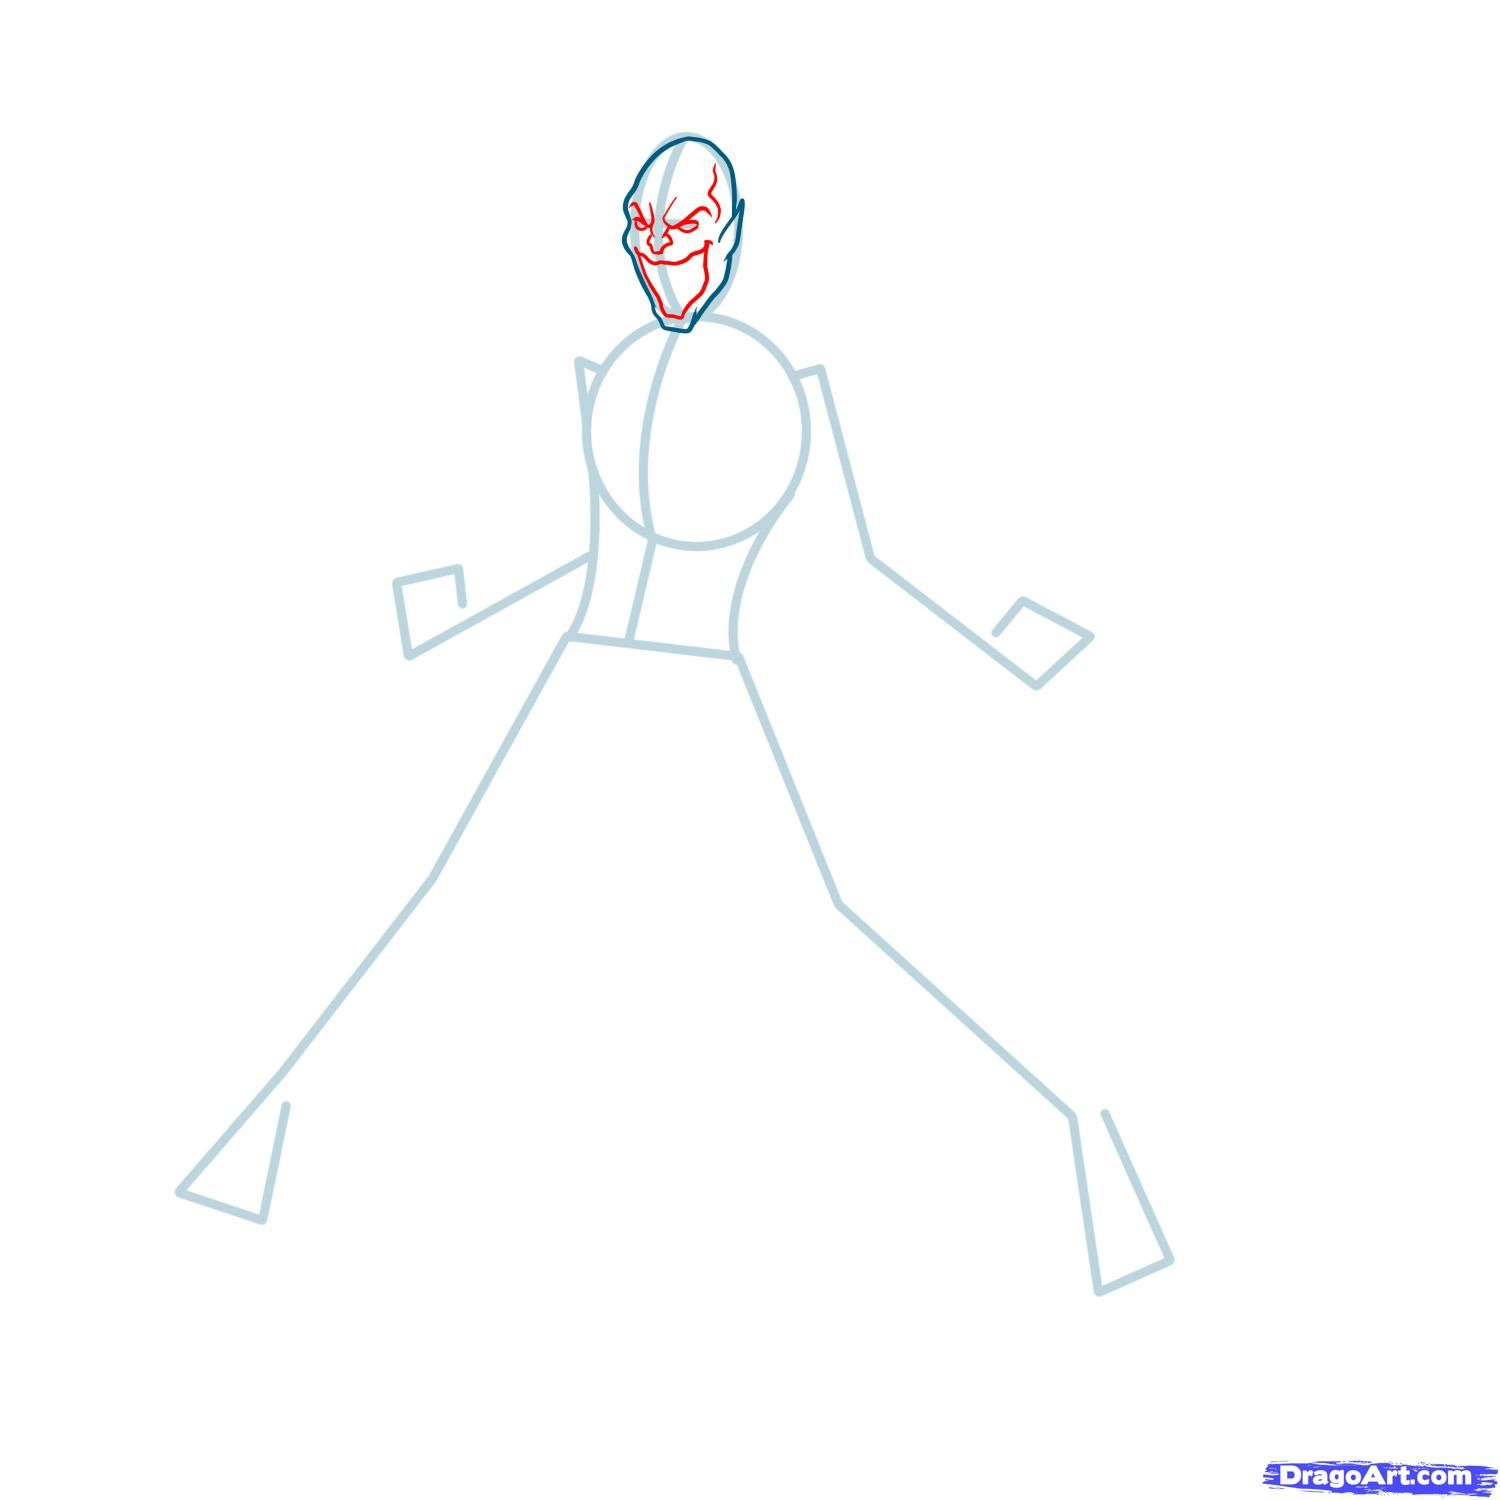 How to draw the Scorpion to the utmost from Mortal Kombat with a pencil step by step 4